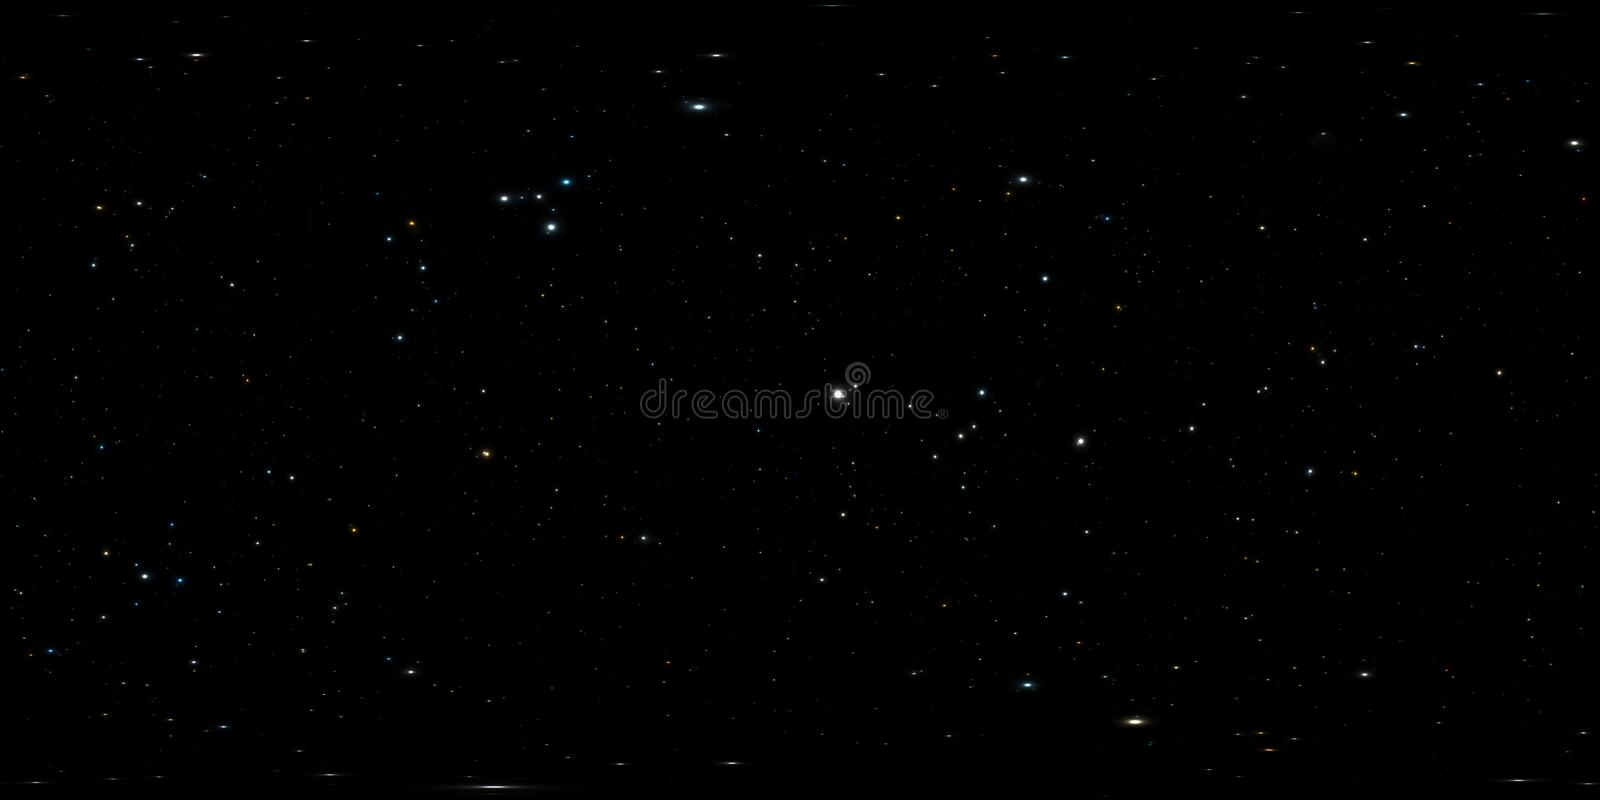 360 degree space background with stars panorama, equirectangular projection, environment map. HDRI spherical panorama. Night. Starry sky background. 3d royalty free illustration